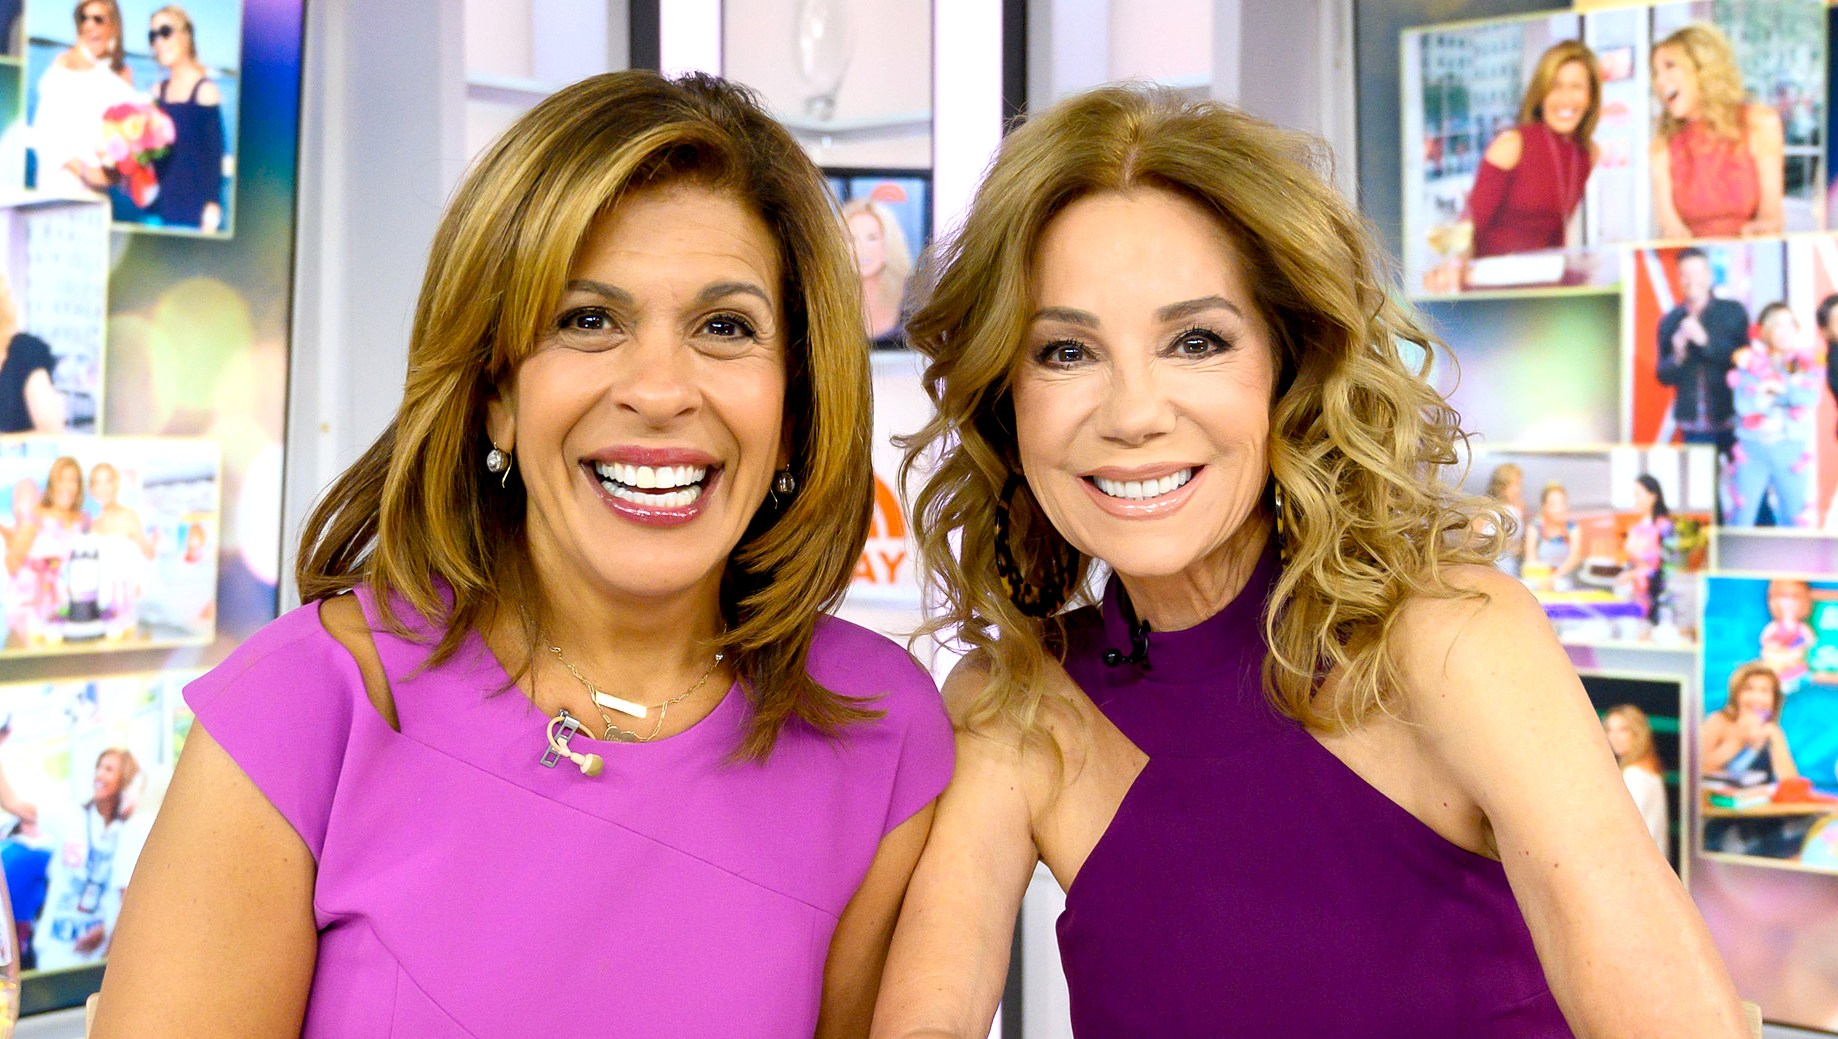 Kathie-Lee-Gifford-Thrilled-Hoda-Kotb-After-Baby